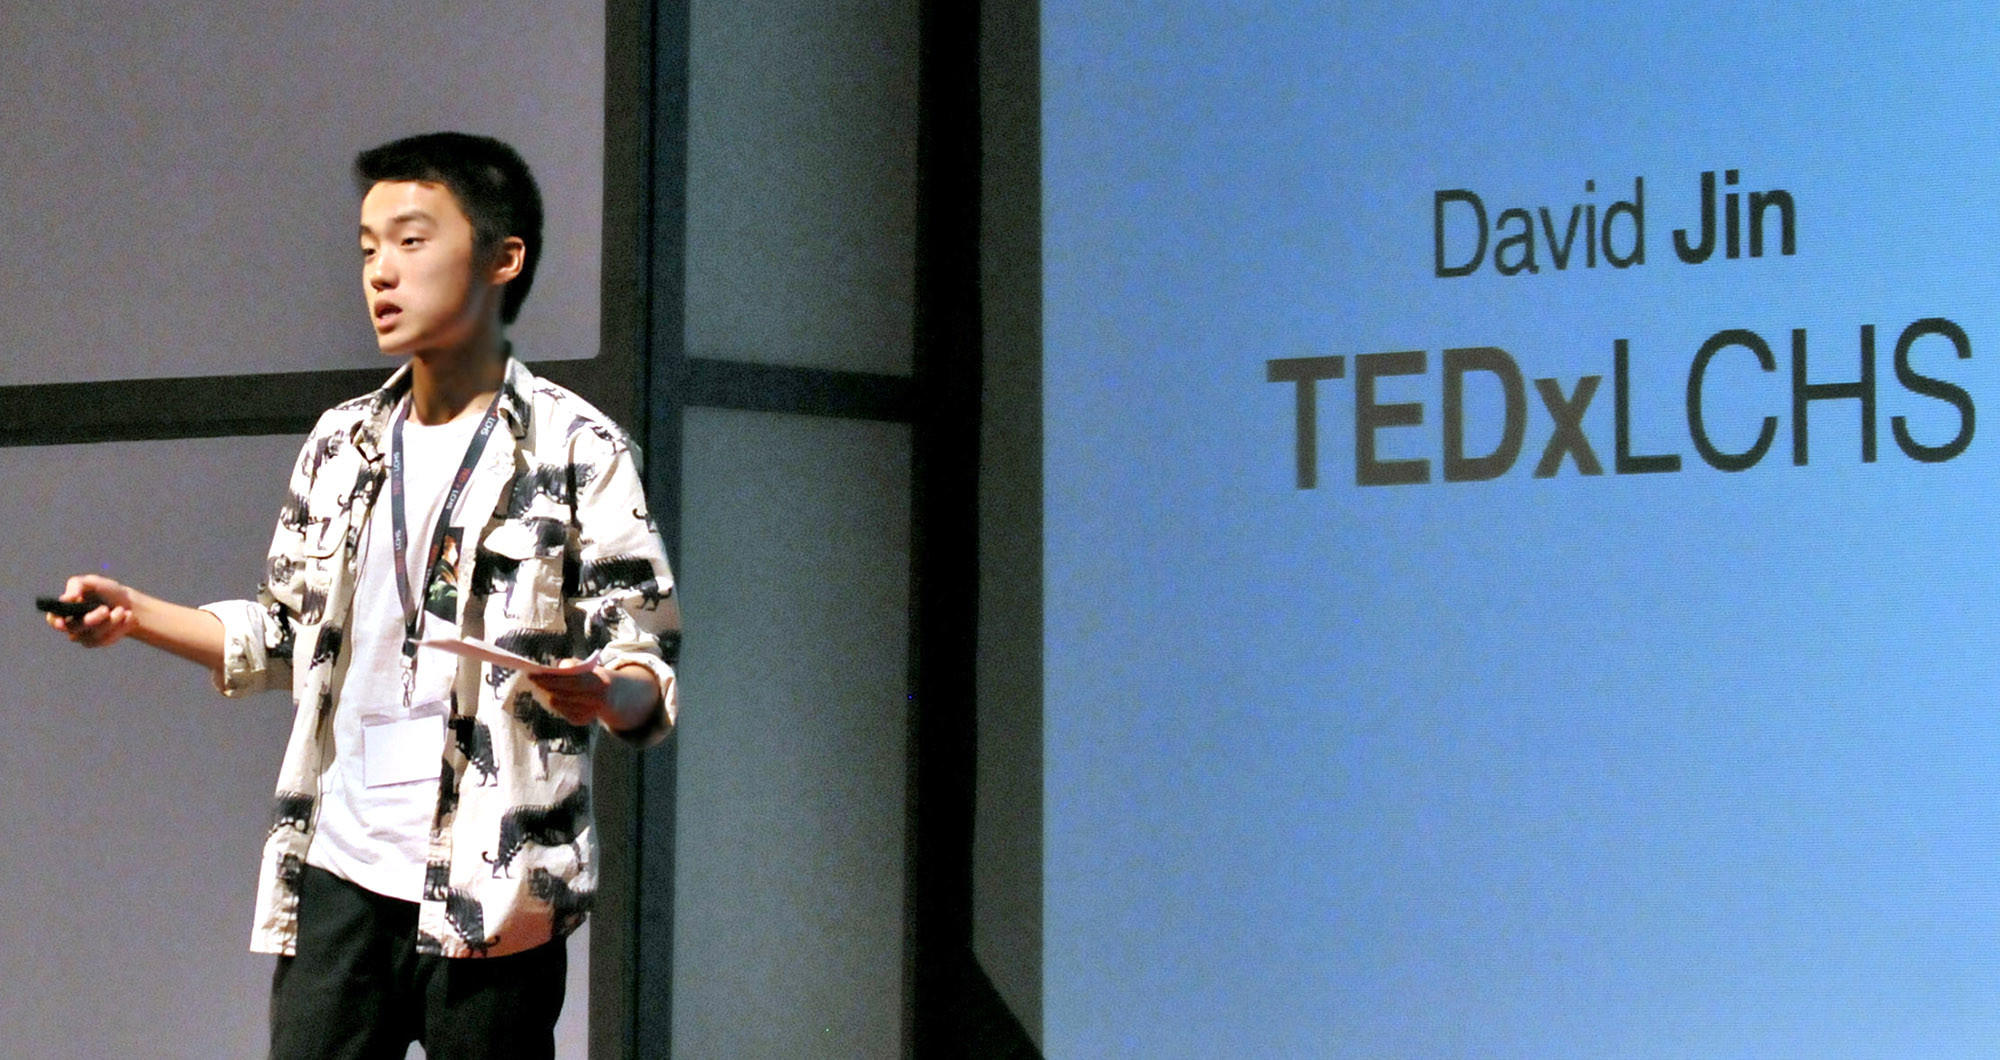 La Cañada High student David Jin speaks during a TEDx (Technology, Entertainment, Design) Talk Event at the high school on Sunday, March 9, 2014.